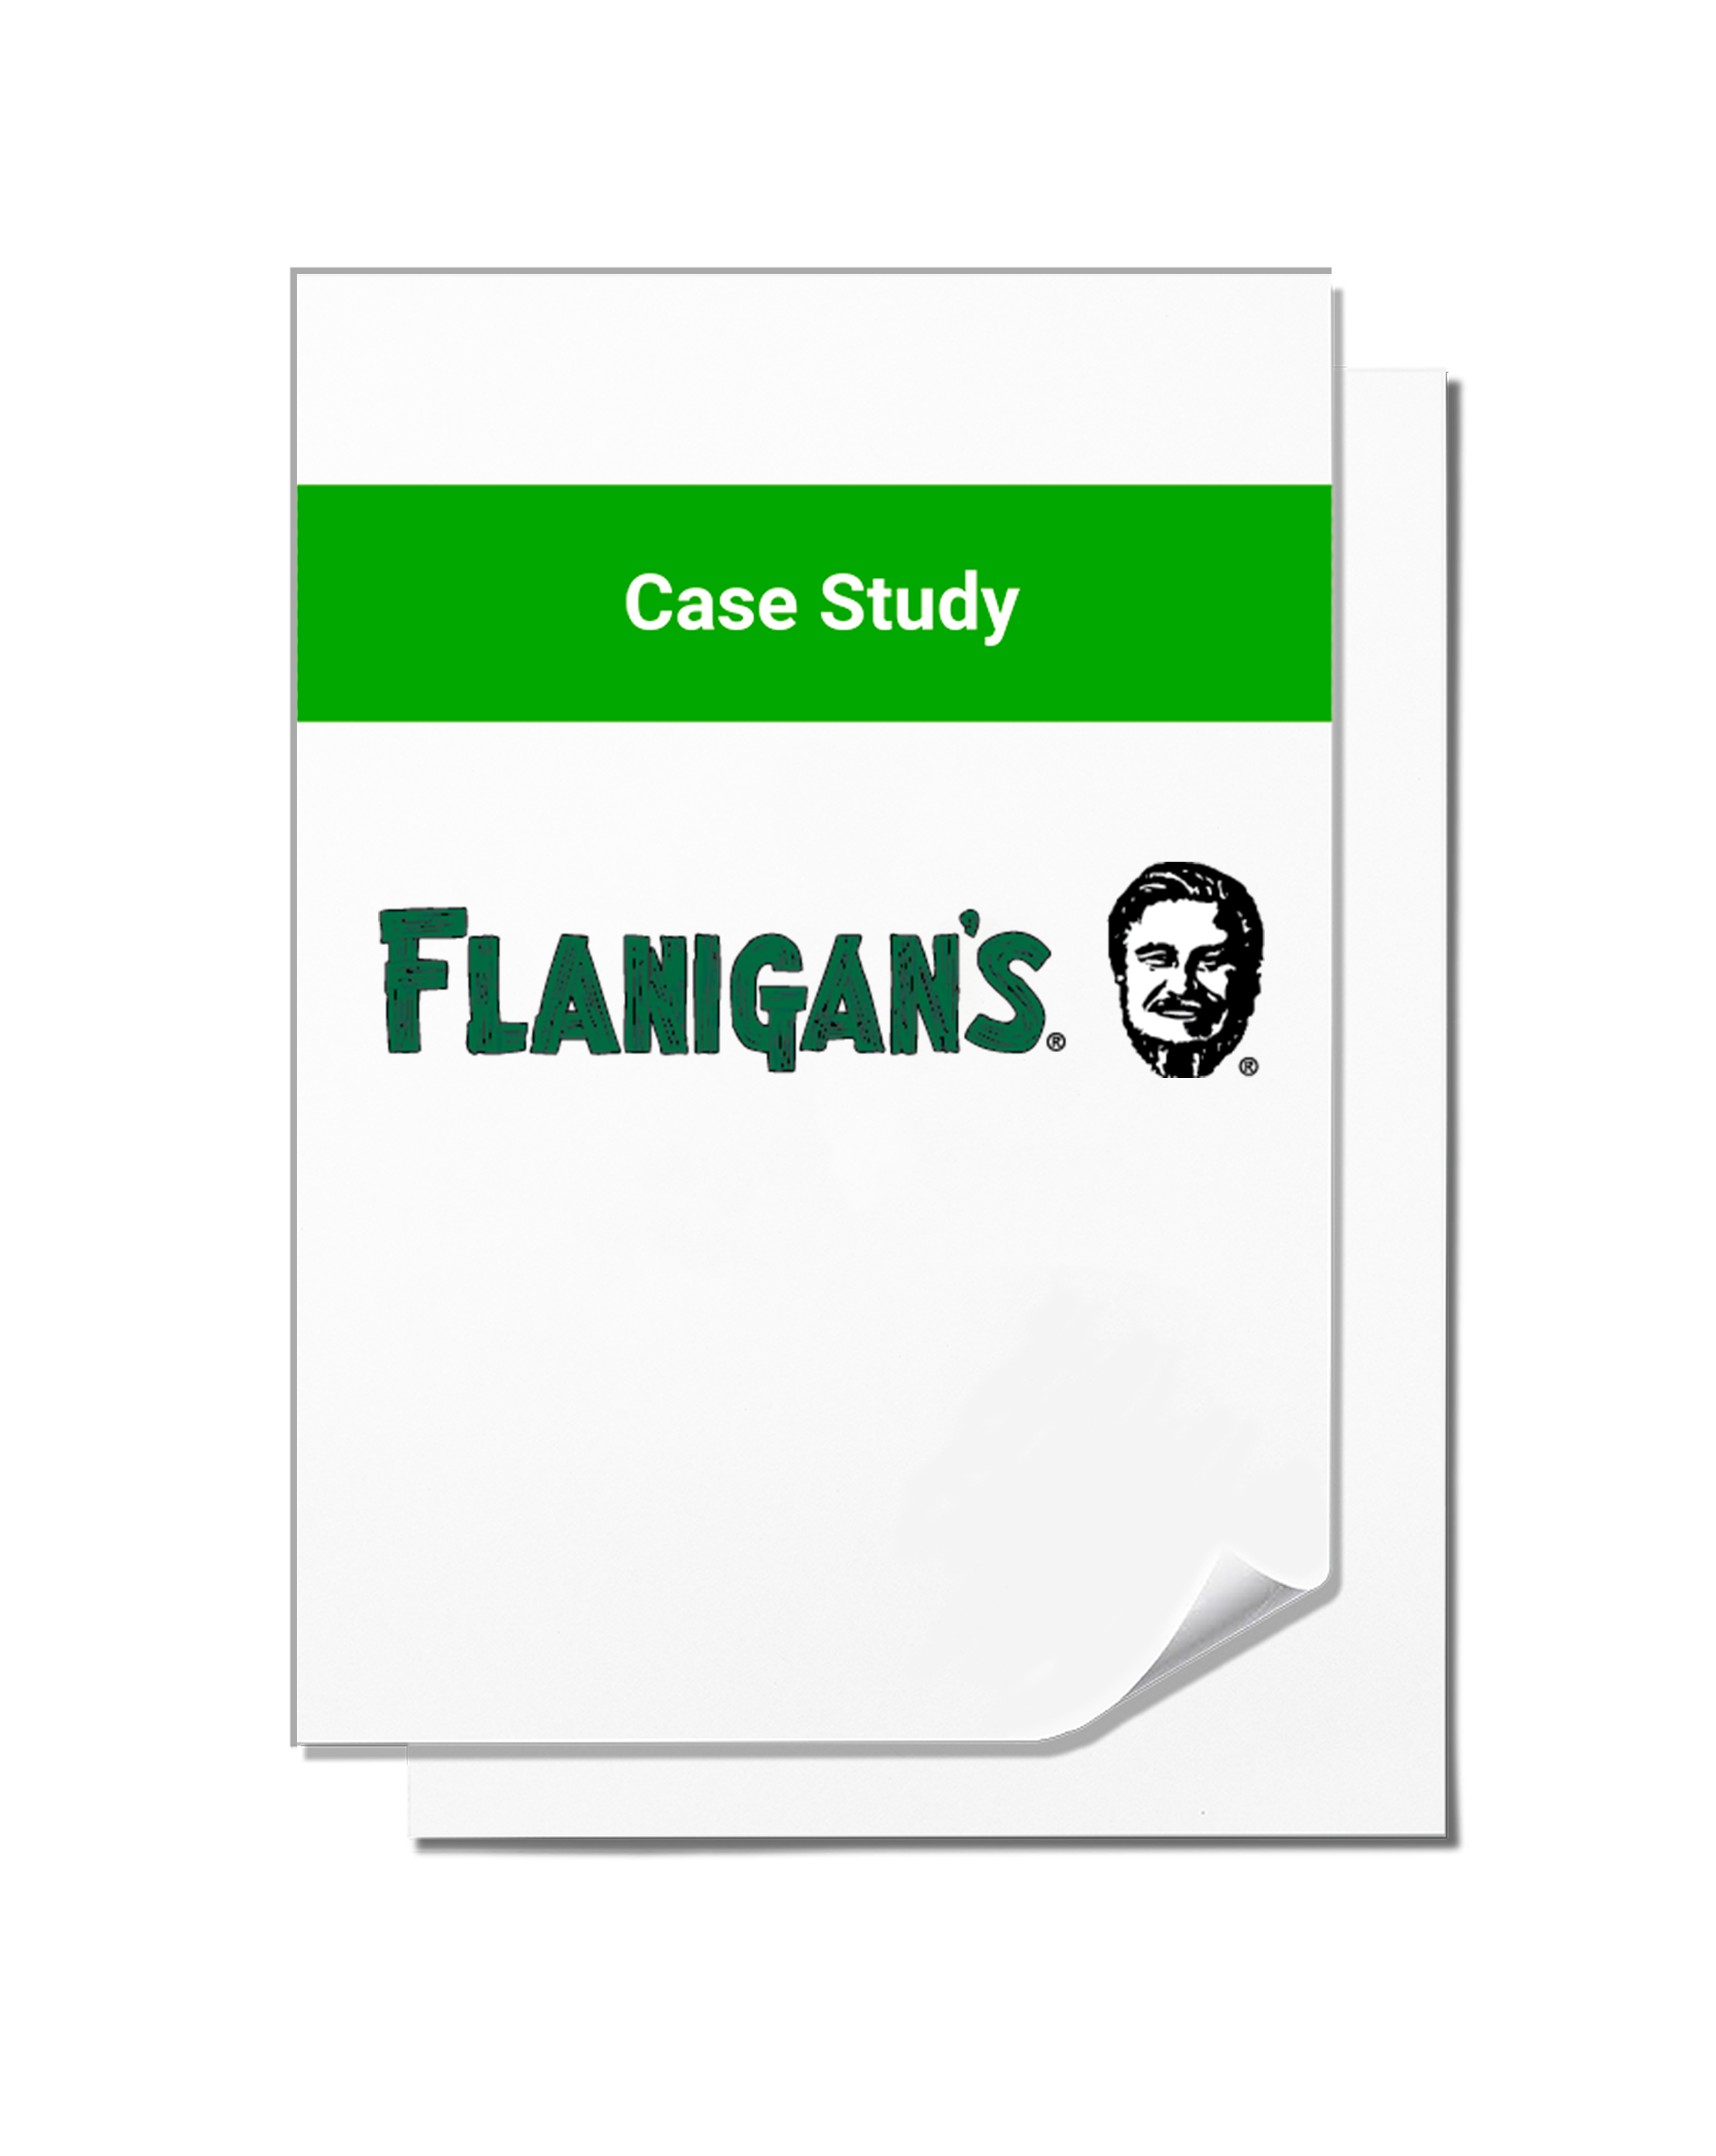 How Flanigan's Leveraged Guest WiFi During the Pandemic to Supercharge Their Marketing